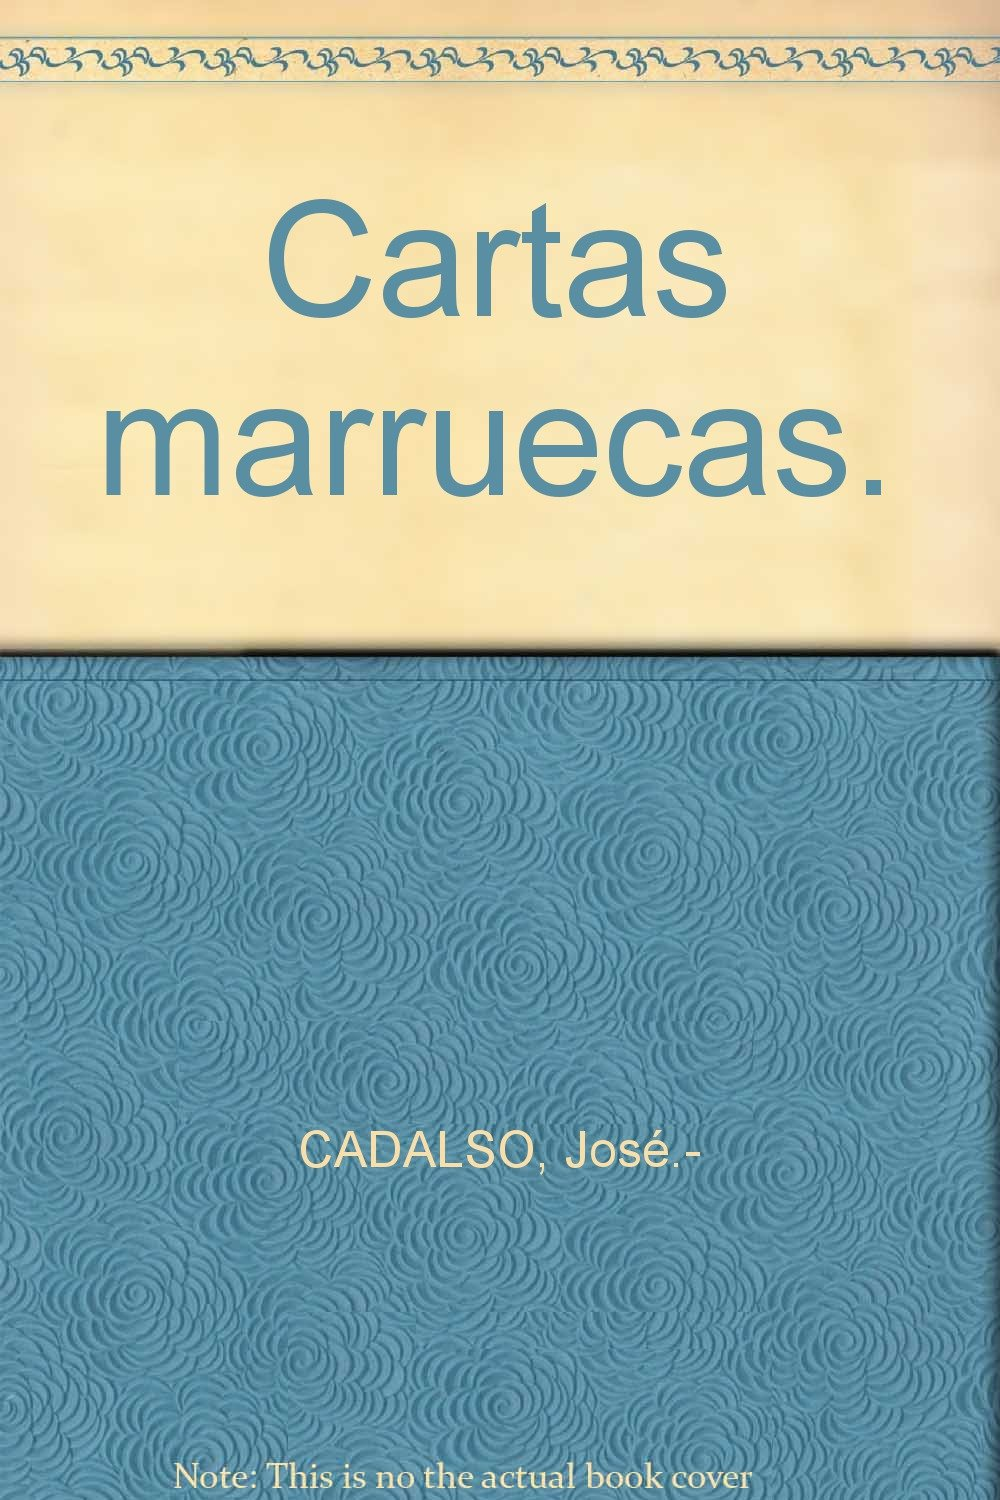 Cartas marruecas.: Amazon.com: Books